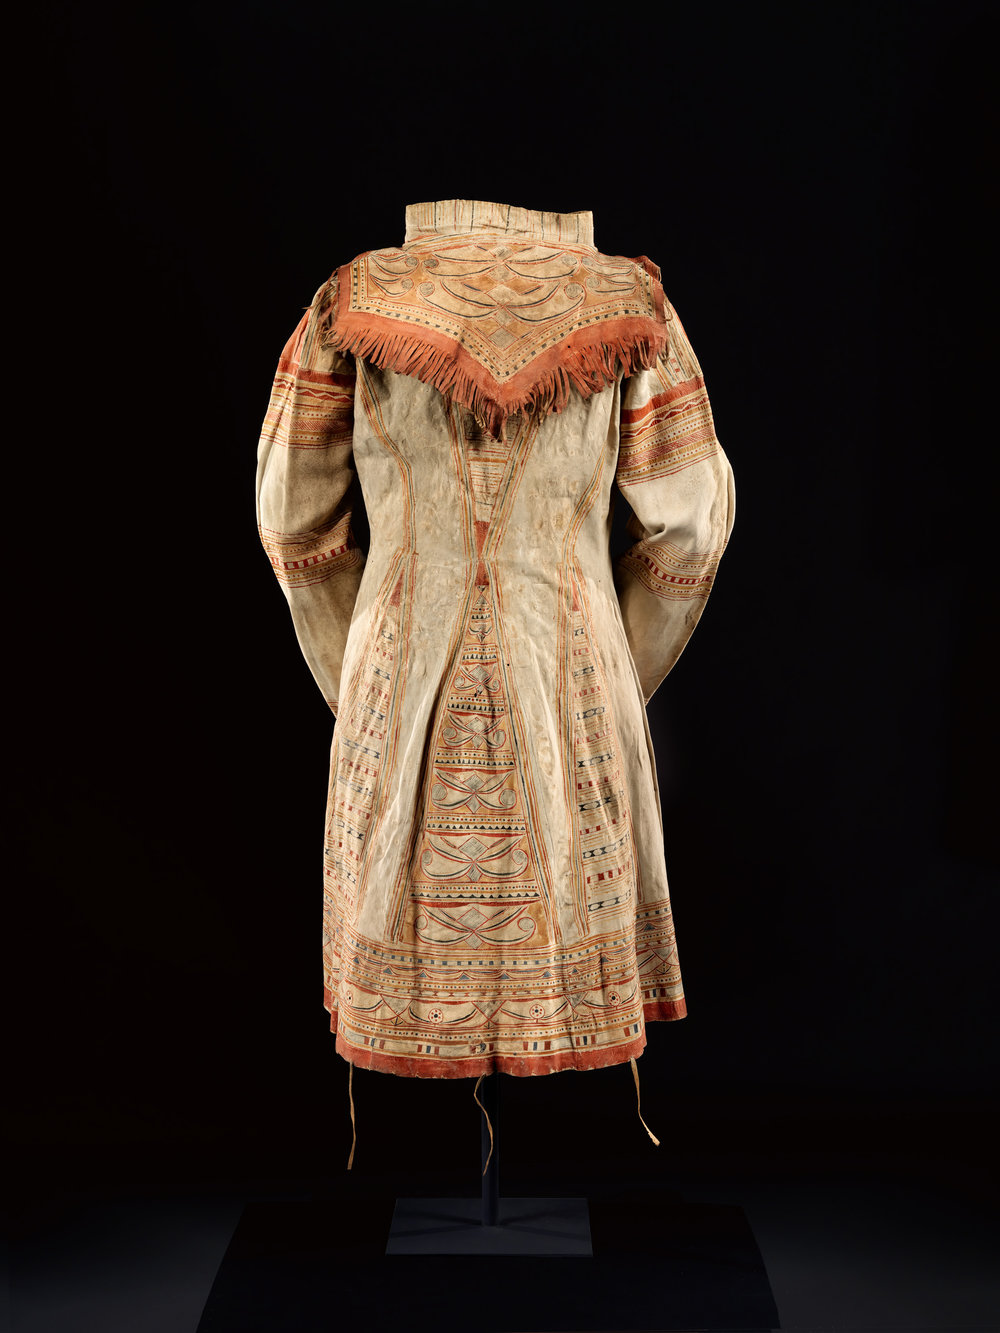 Man's Coat c.1840 (Naskapi)   The Charles and Valerie Diker Collection of Native American Art, Gift of Valerie-Charles Diker Fund, 2017